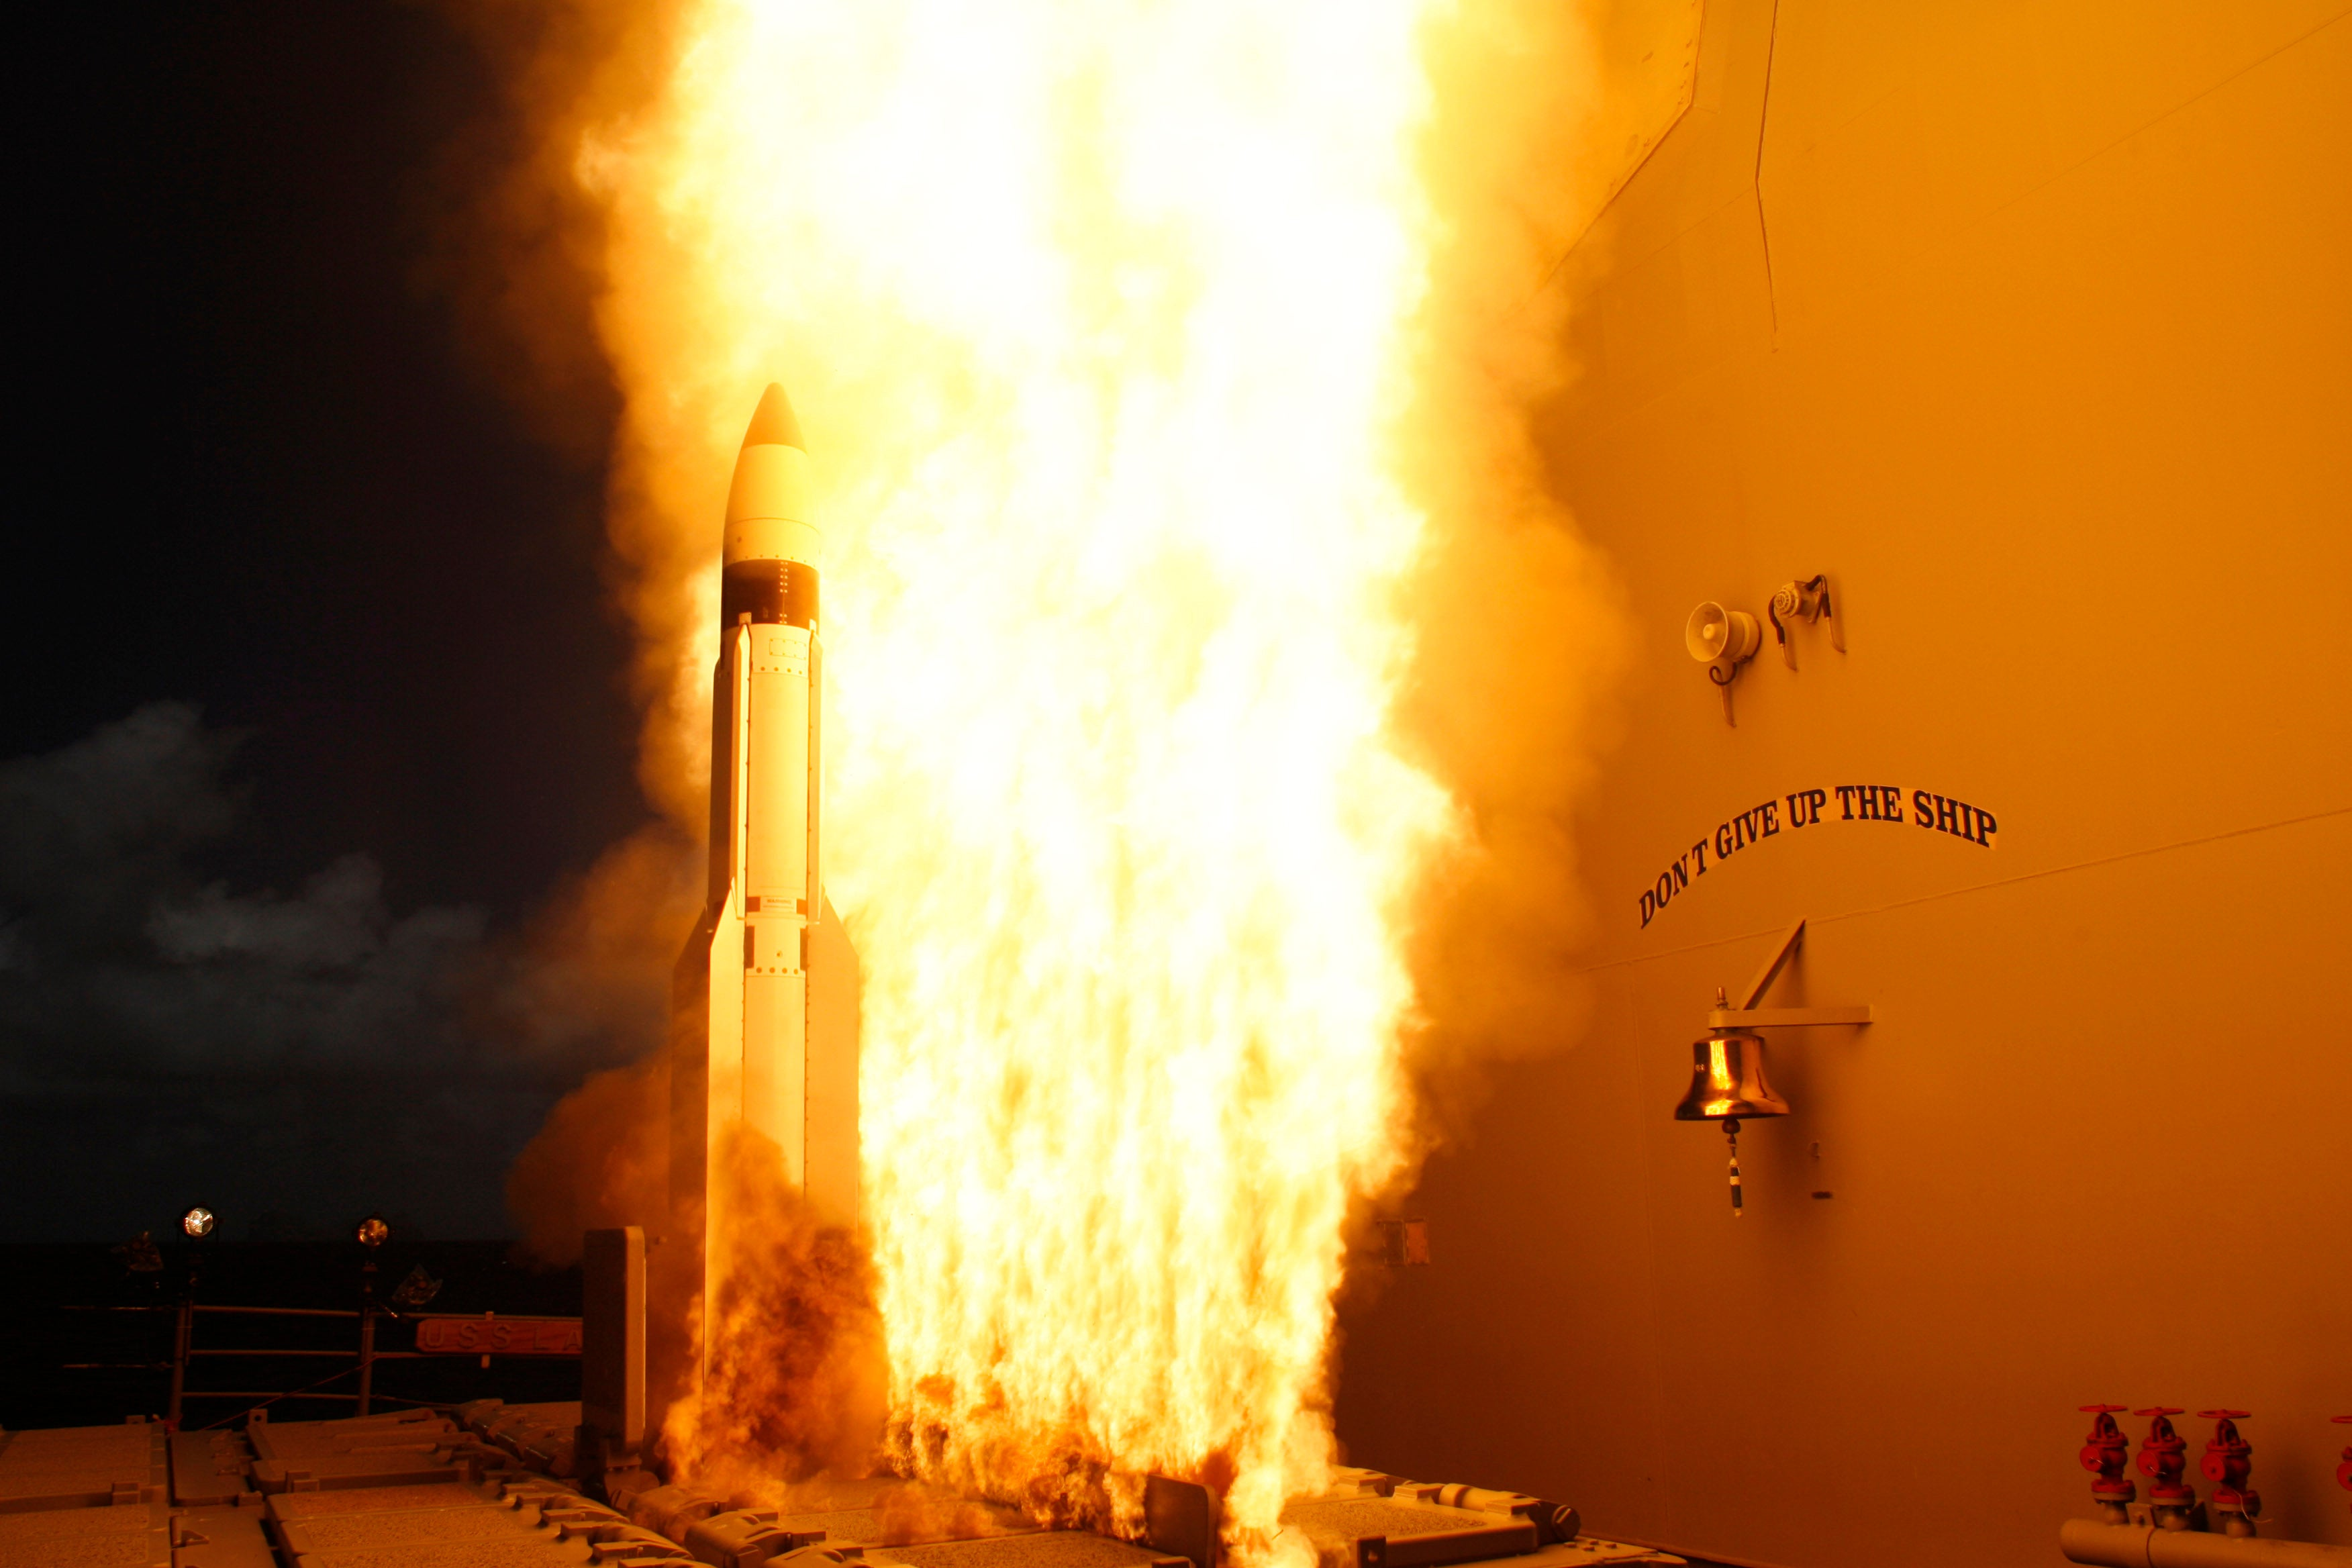 A Standard Missile-3 (SM-3) is launched from the Aegis-class guided missile cruiser USS Lake Erie (CG 70), during a joint Missile Defense Agency, U.S. Navy ballistic missile flight test.